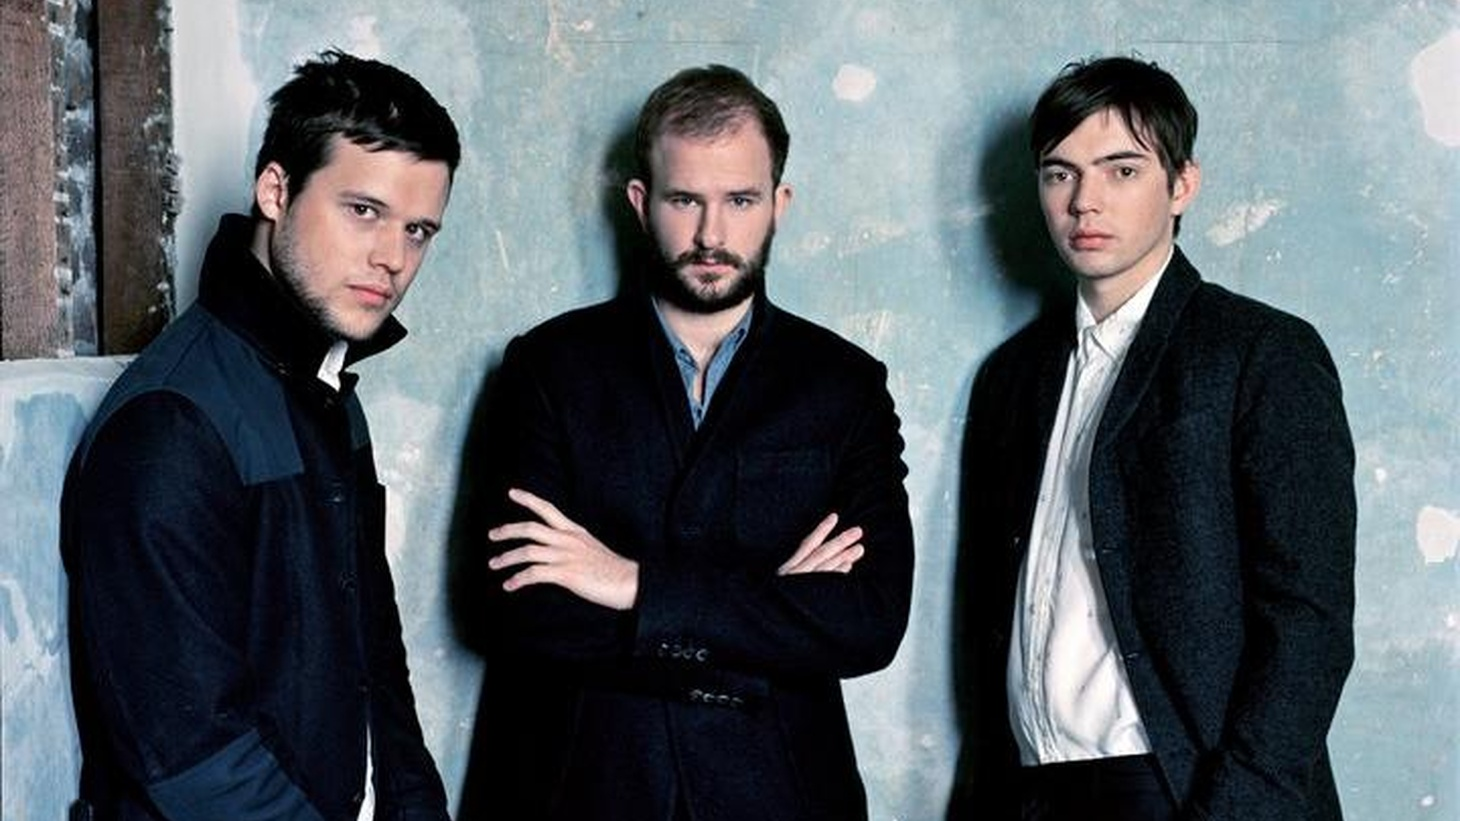 London trio White Lies offer brooding rock with soaring choruses that are incredibly catchy. Their music is a dark-edged nod to the 80's and you can hear it live when they perform on Morning Becomes Eclectic at 11:15am.